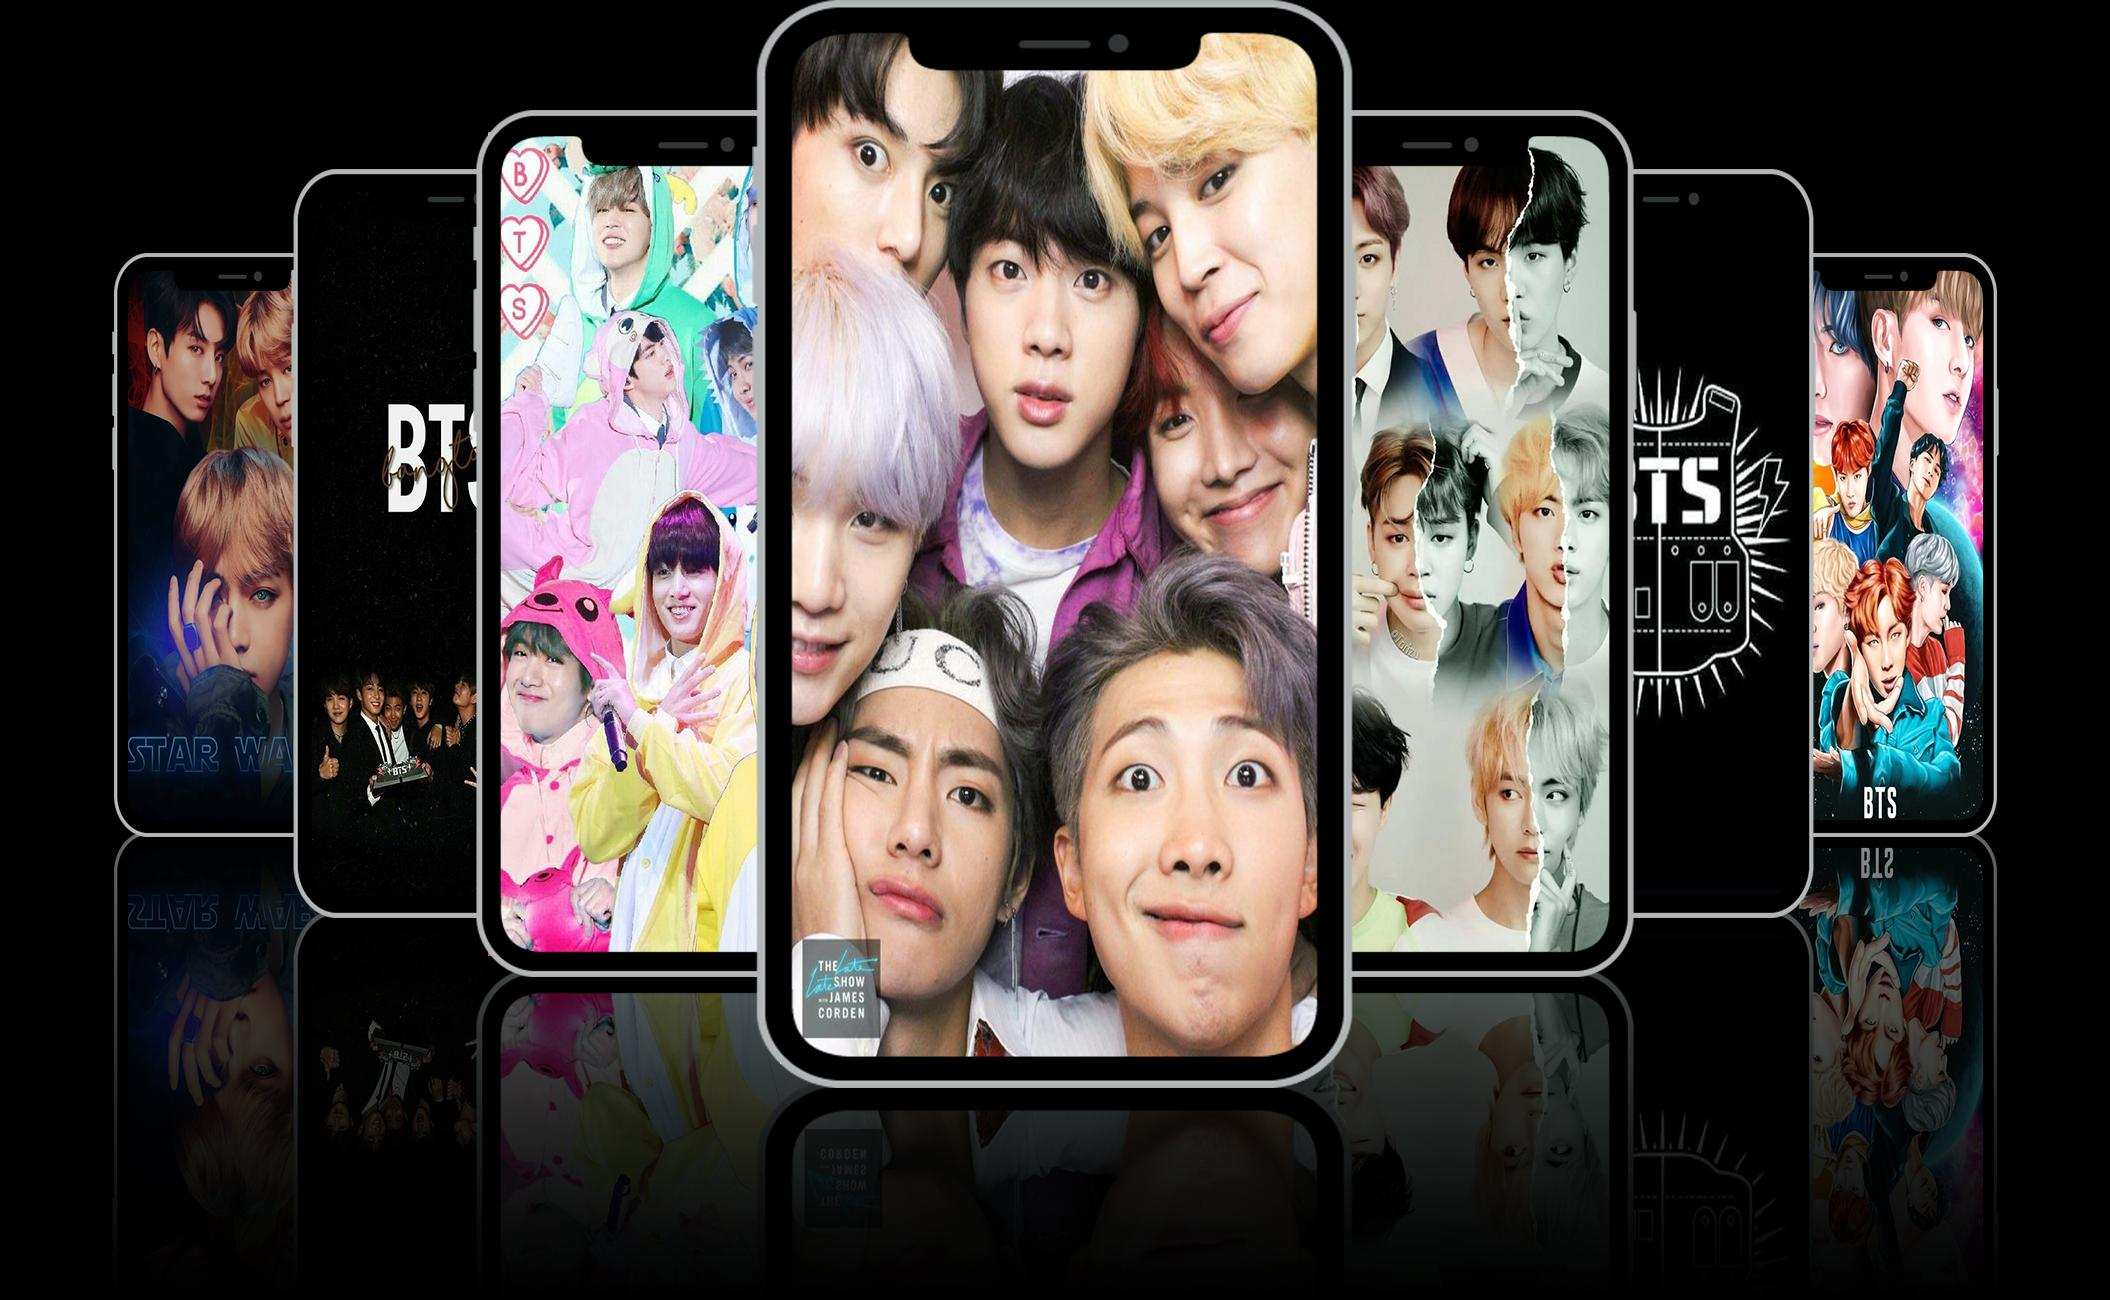 BTS Wallpaper 4K 2020 BTS Lock screen HD for Android   APK Download 2110x1300